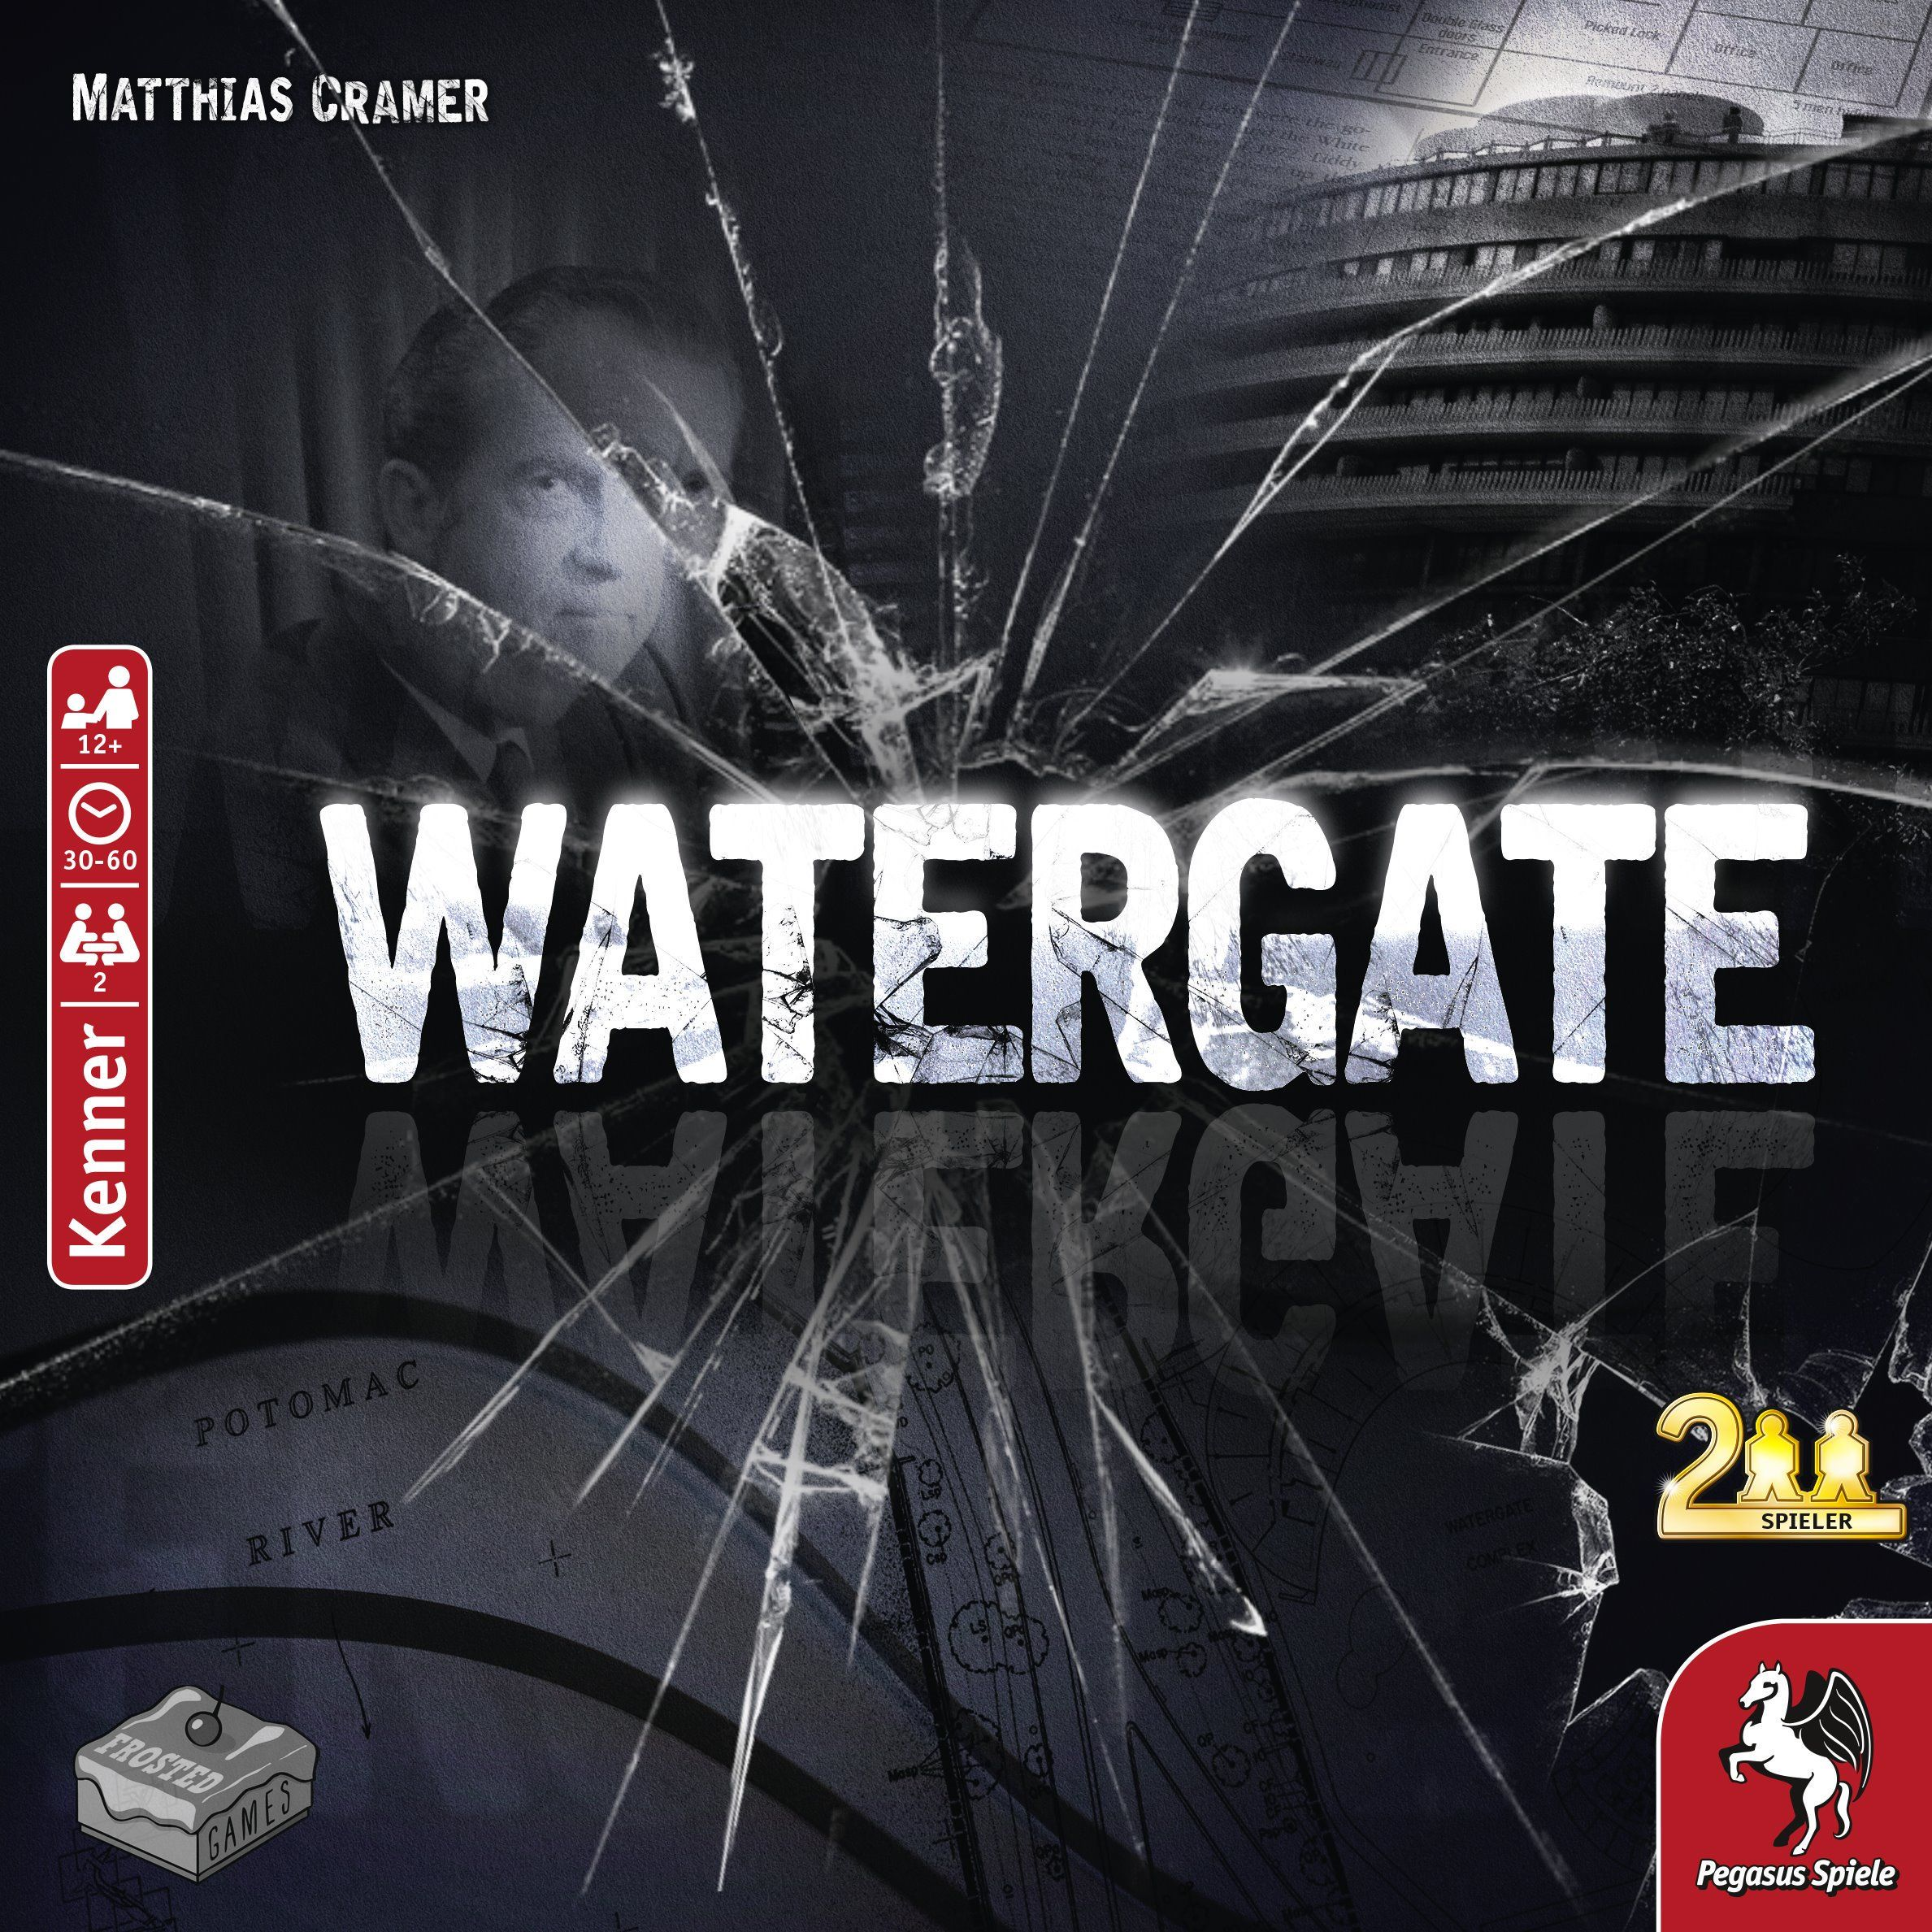 Mi top Sentido Antihorario - Watergate